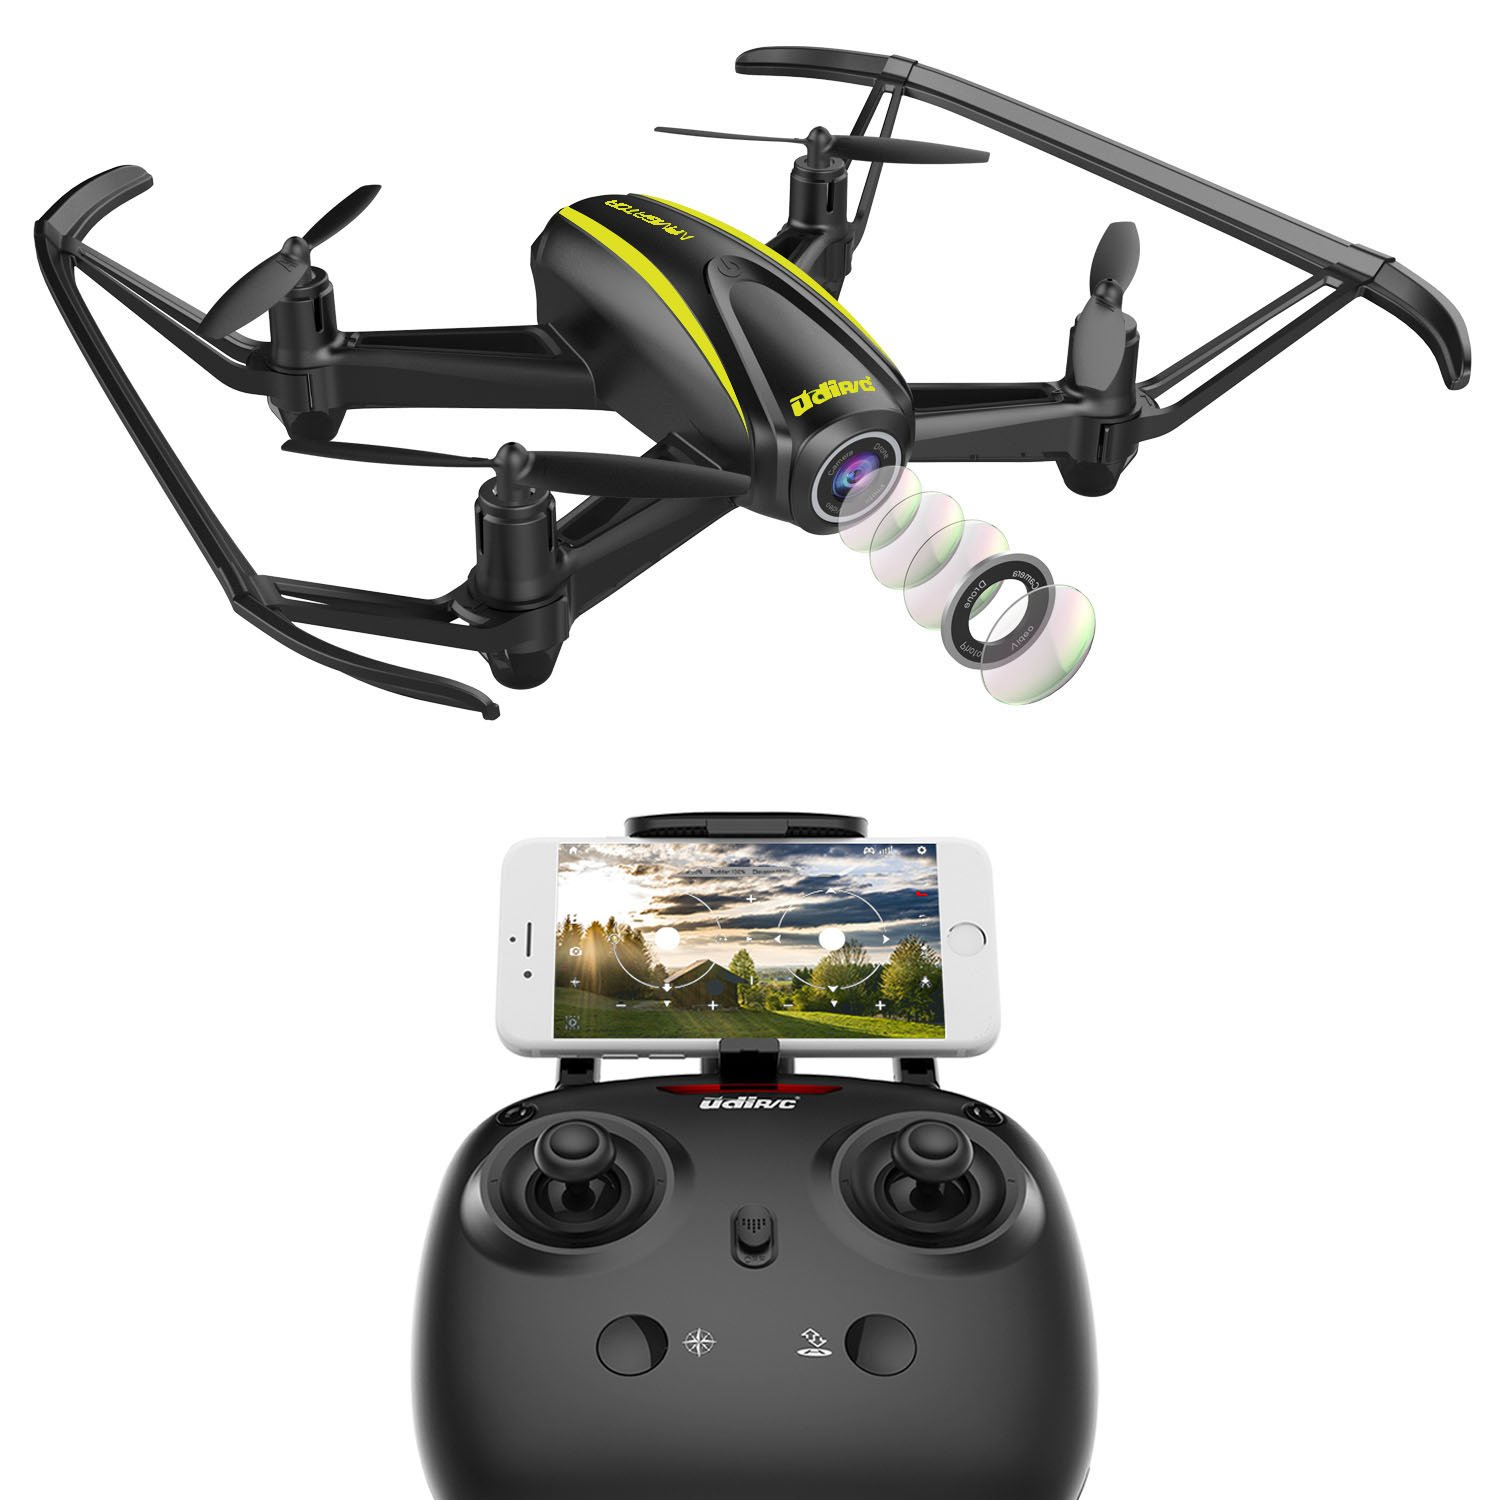 DROCON U31W best drone for beginner